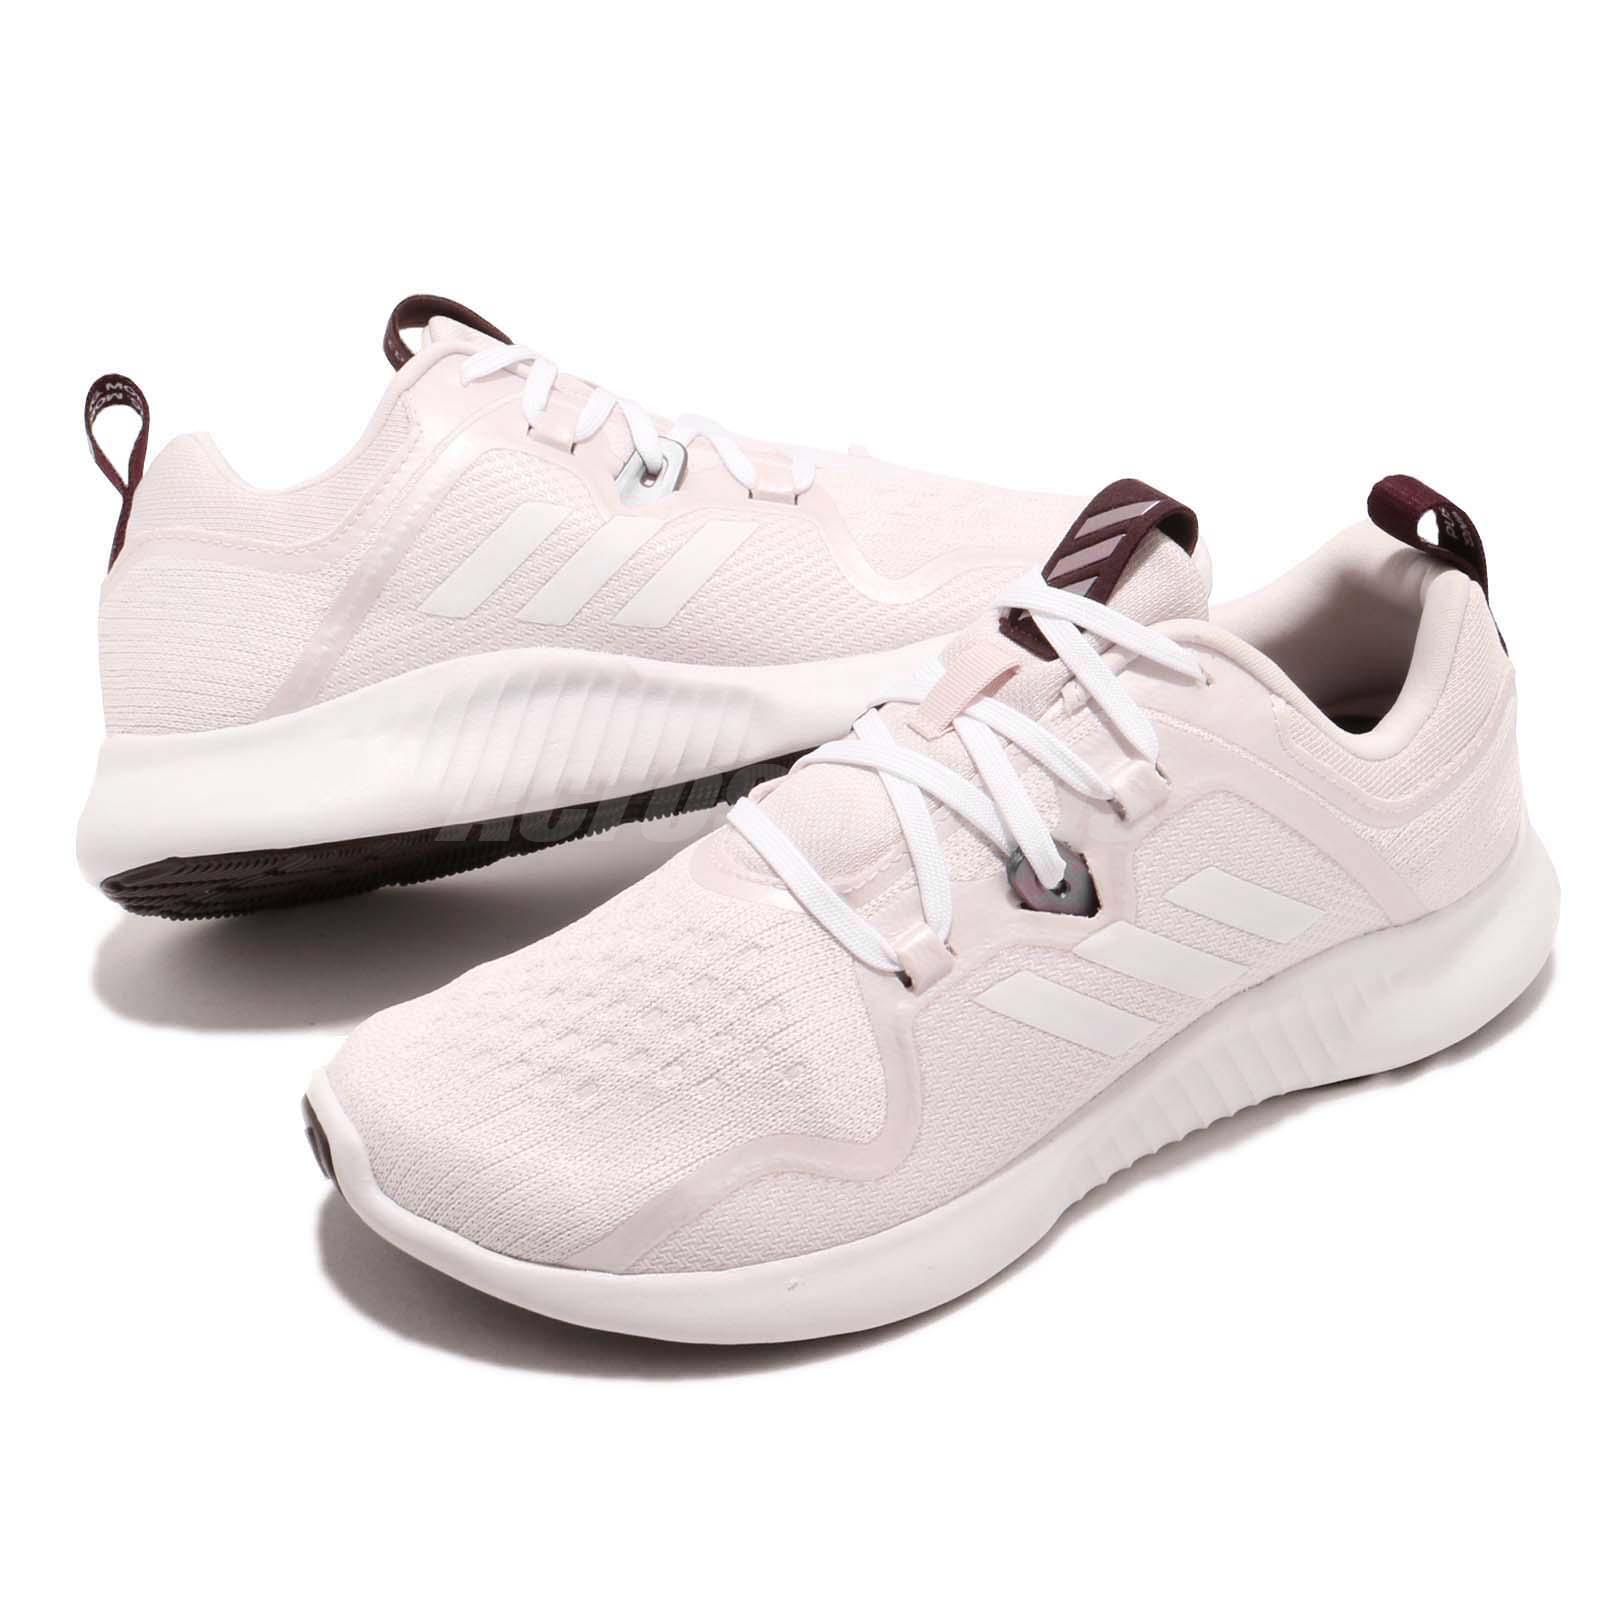 Details about adidas EdgeBOUNCE W Pink White Women Running Training Shoes  Sneakers BB7562 8d16d068f